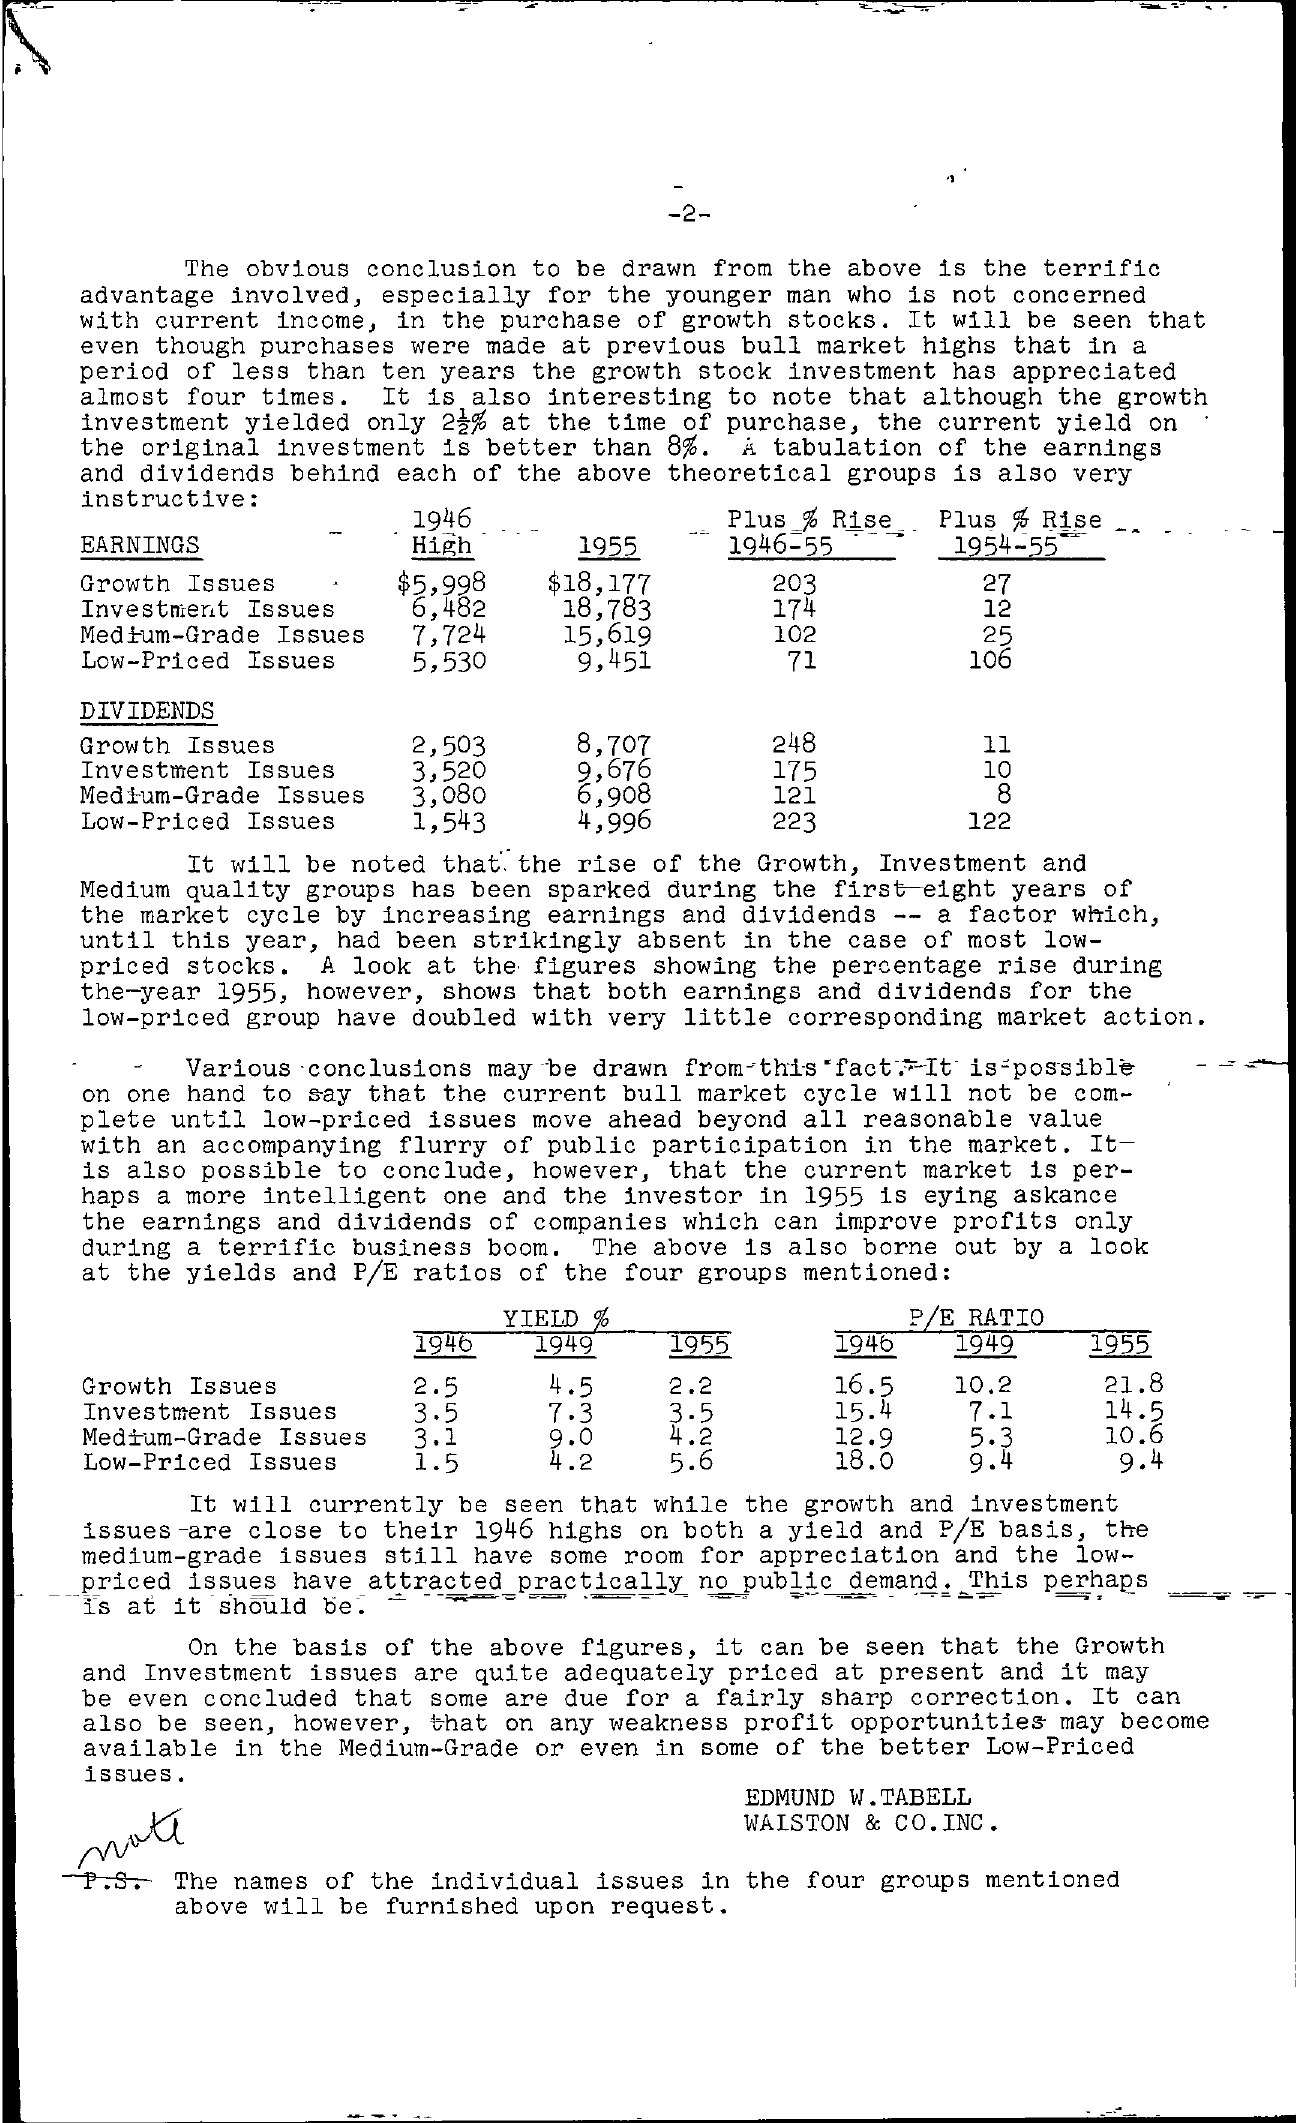 Tabell's Market Letter - January 20, 1956 page 2